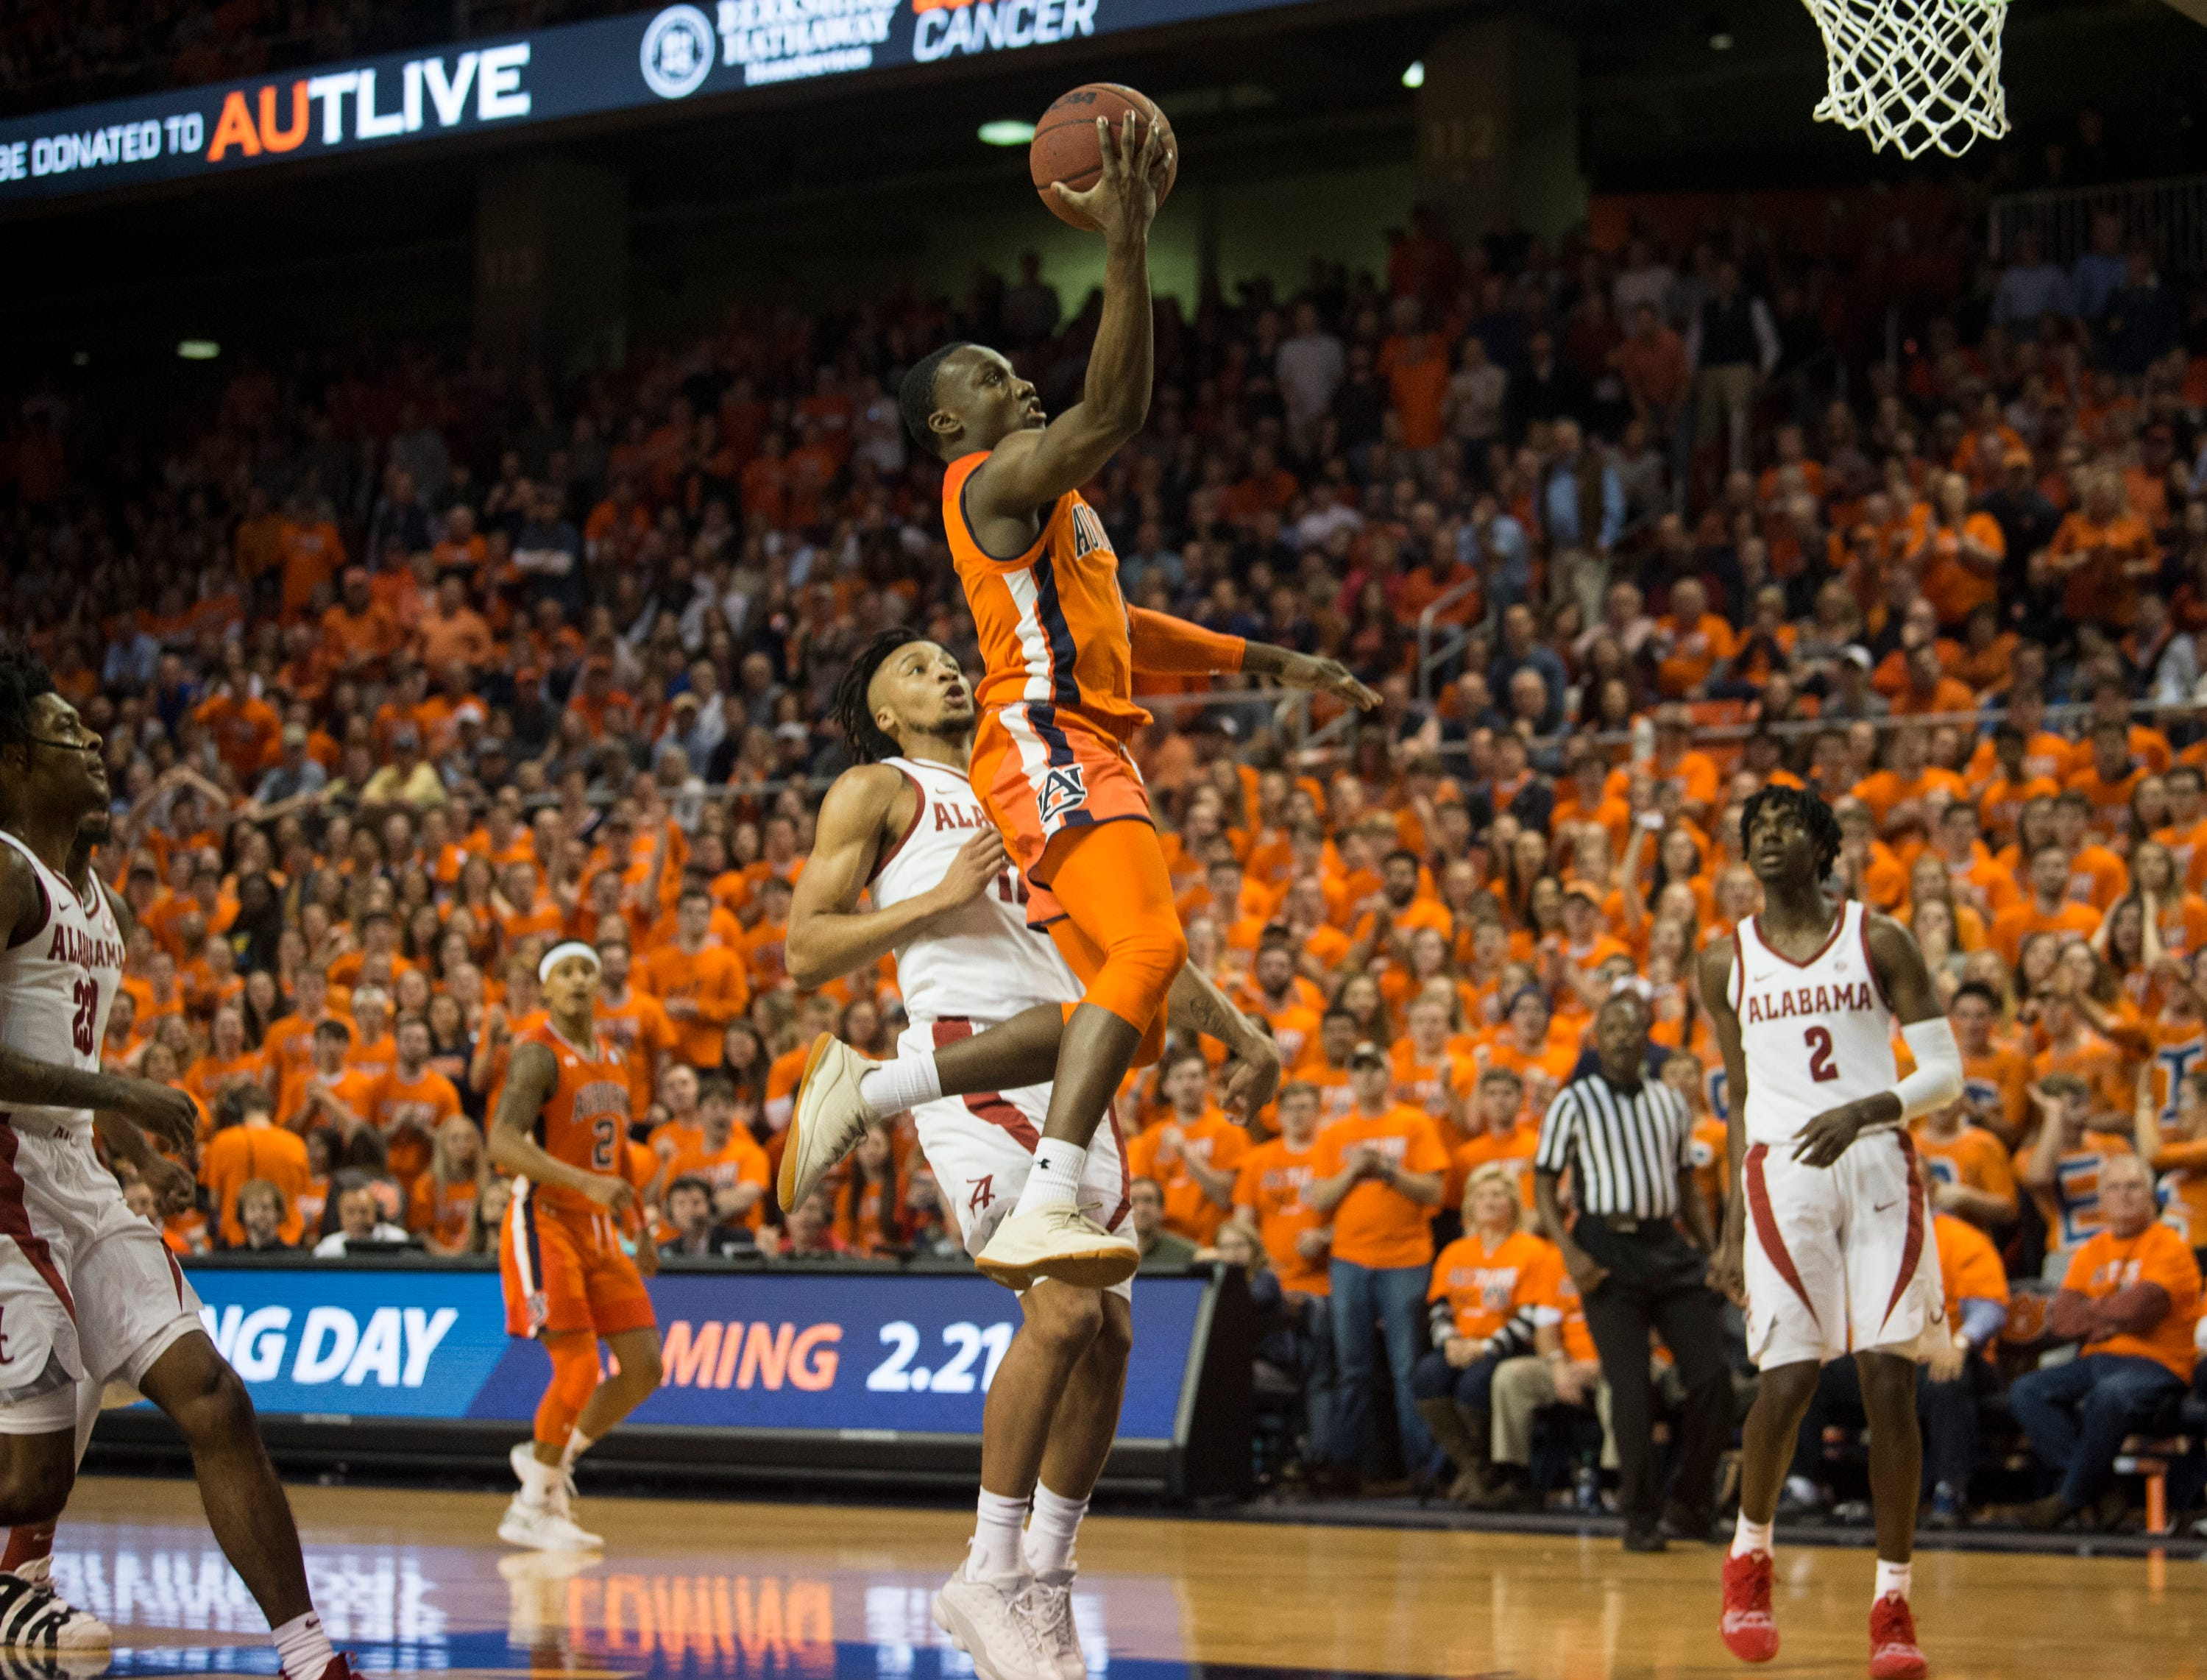 Auburn guard Jared Harper (1) goes up for a layup at Auburn Arena in Auburn, Ala., on Saturday, Feb. 2, 2019. Auburn leads Alabama 48-28 at halftime.